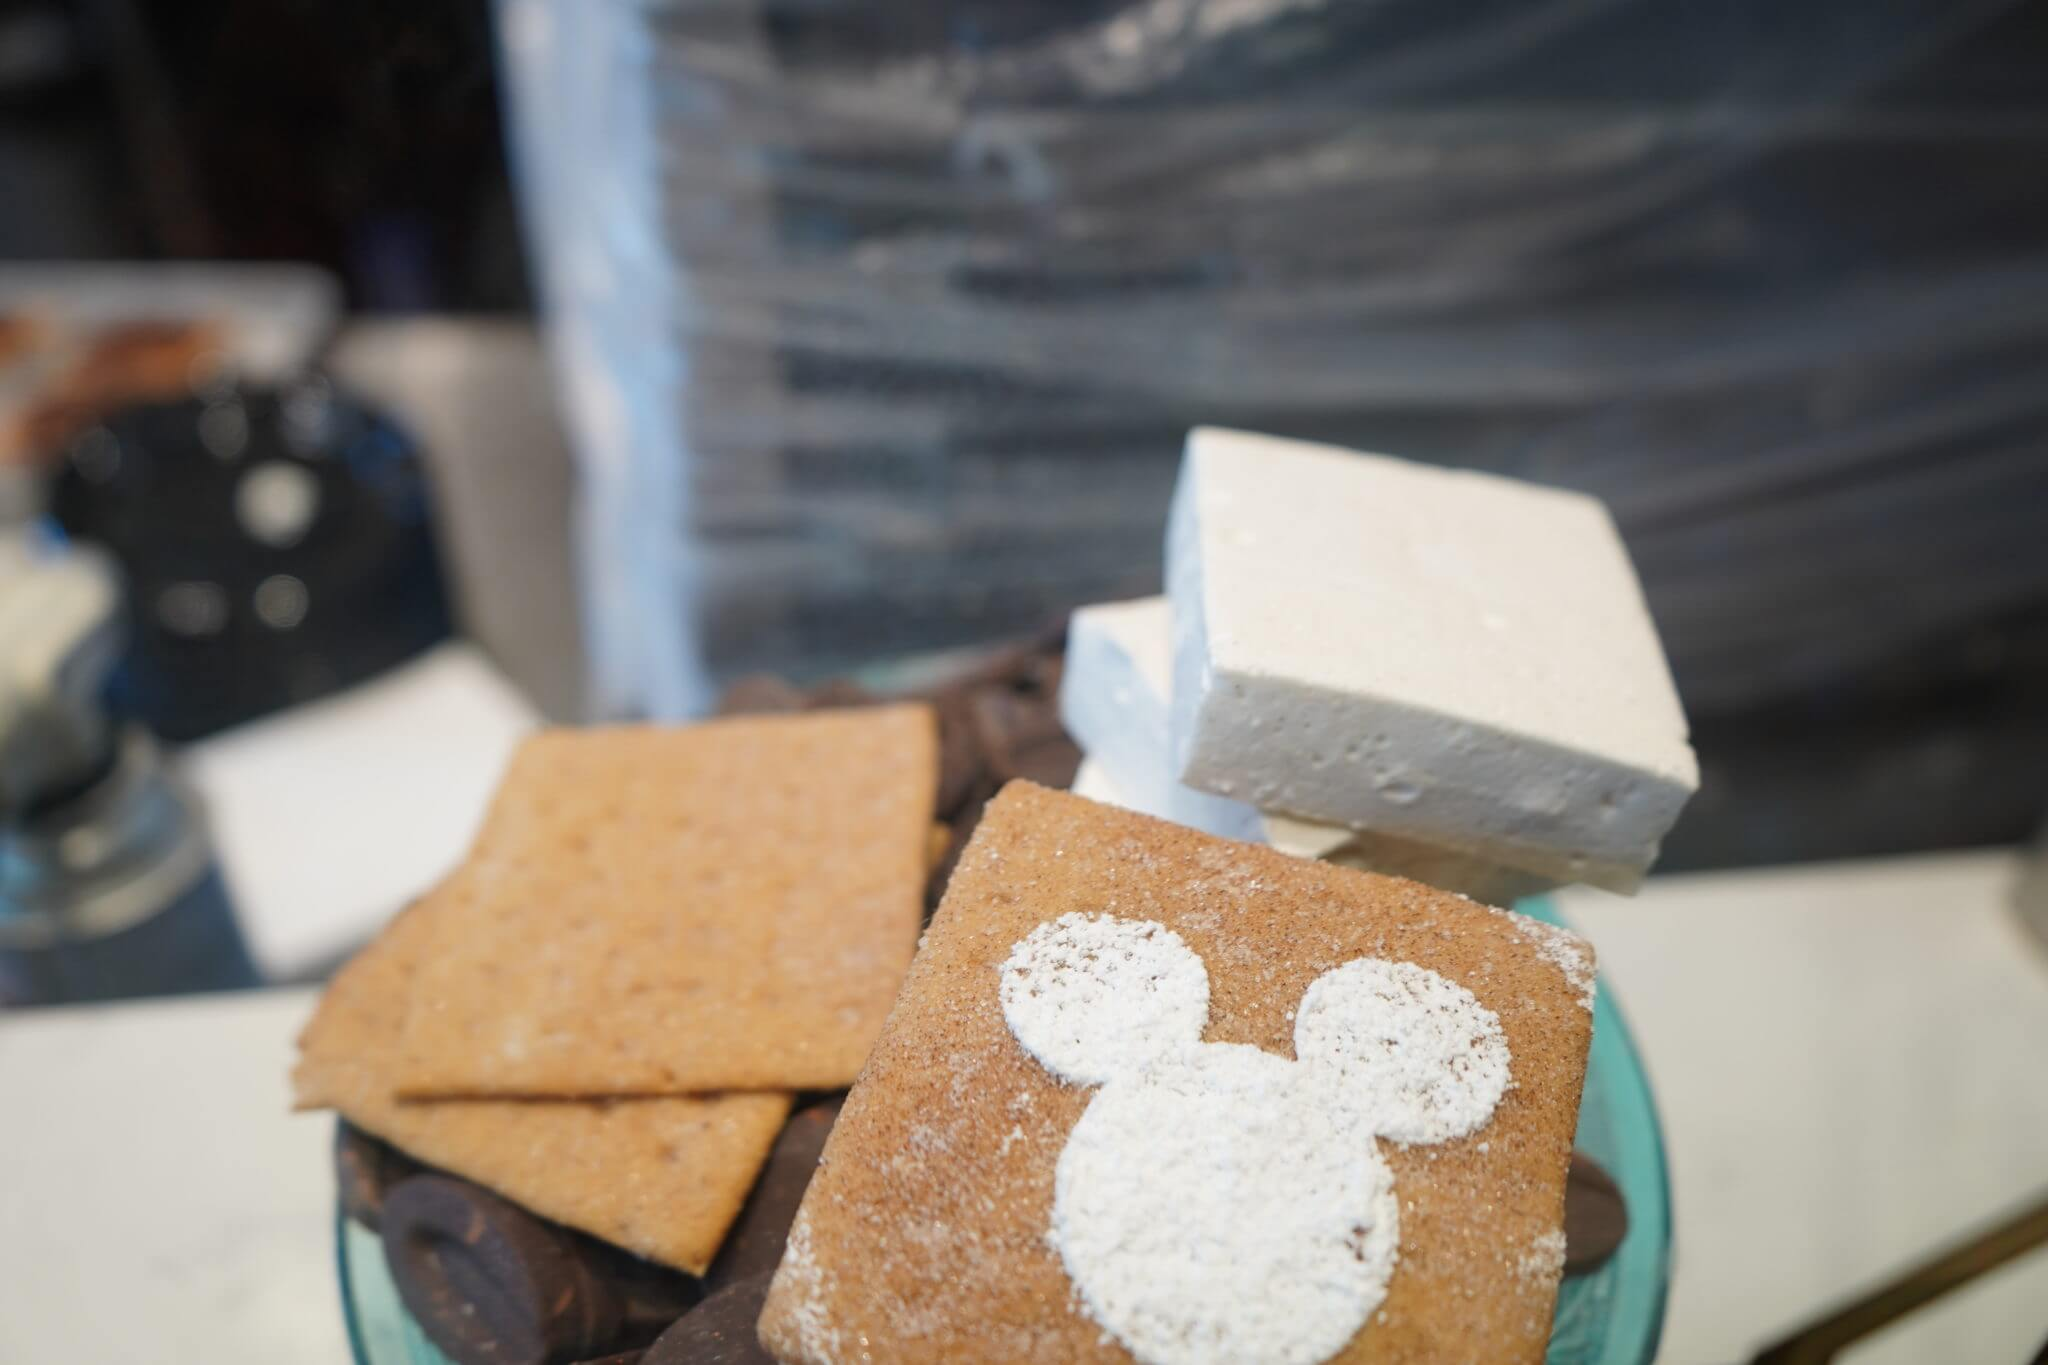 Mickey S'mores - The Ganachery at Disney Springs